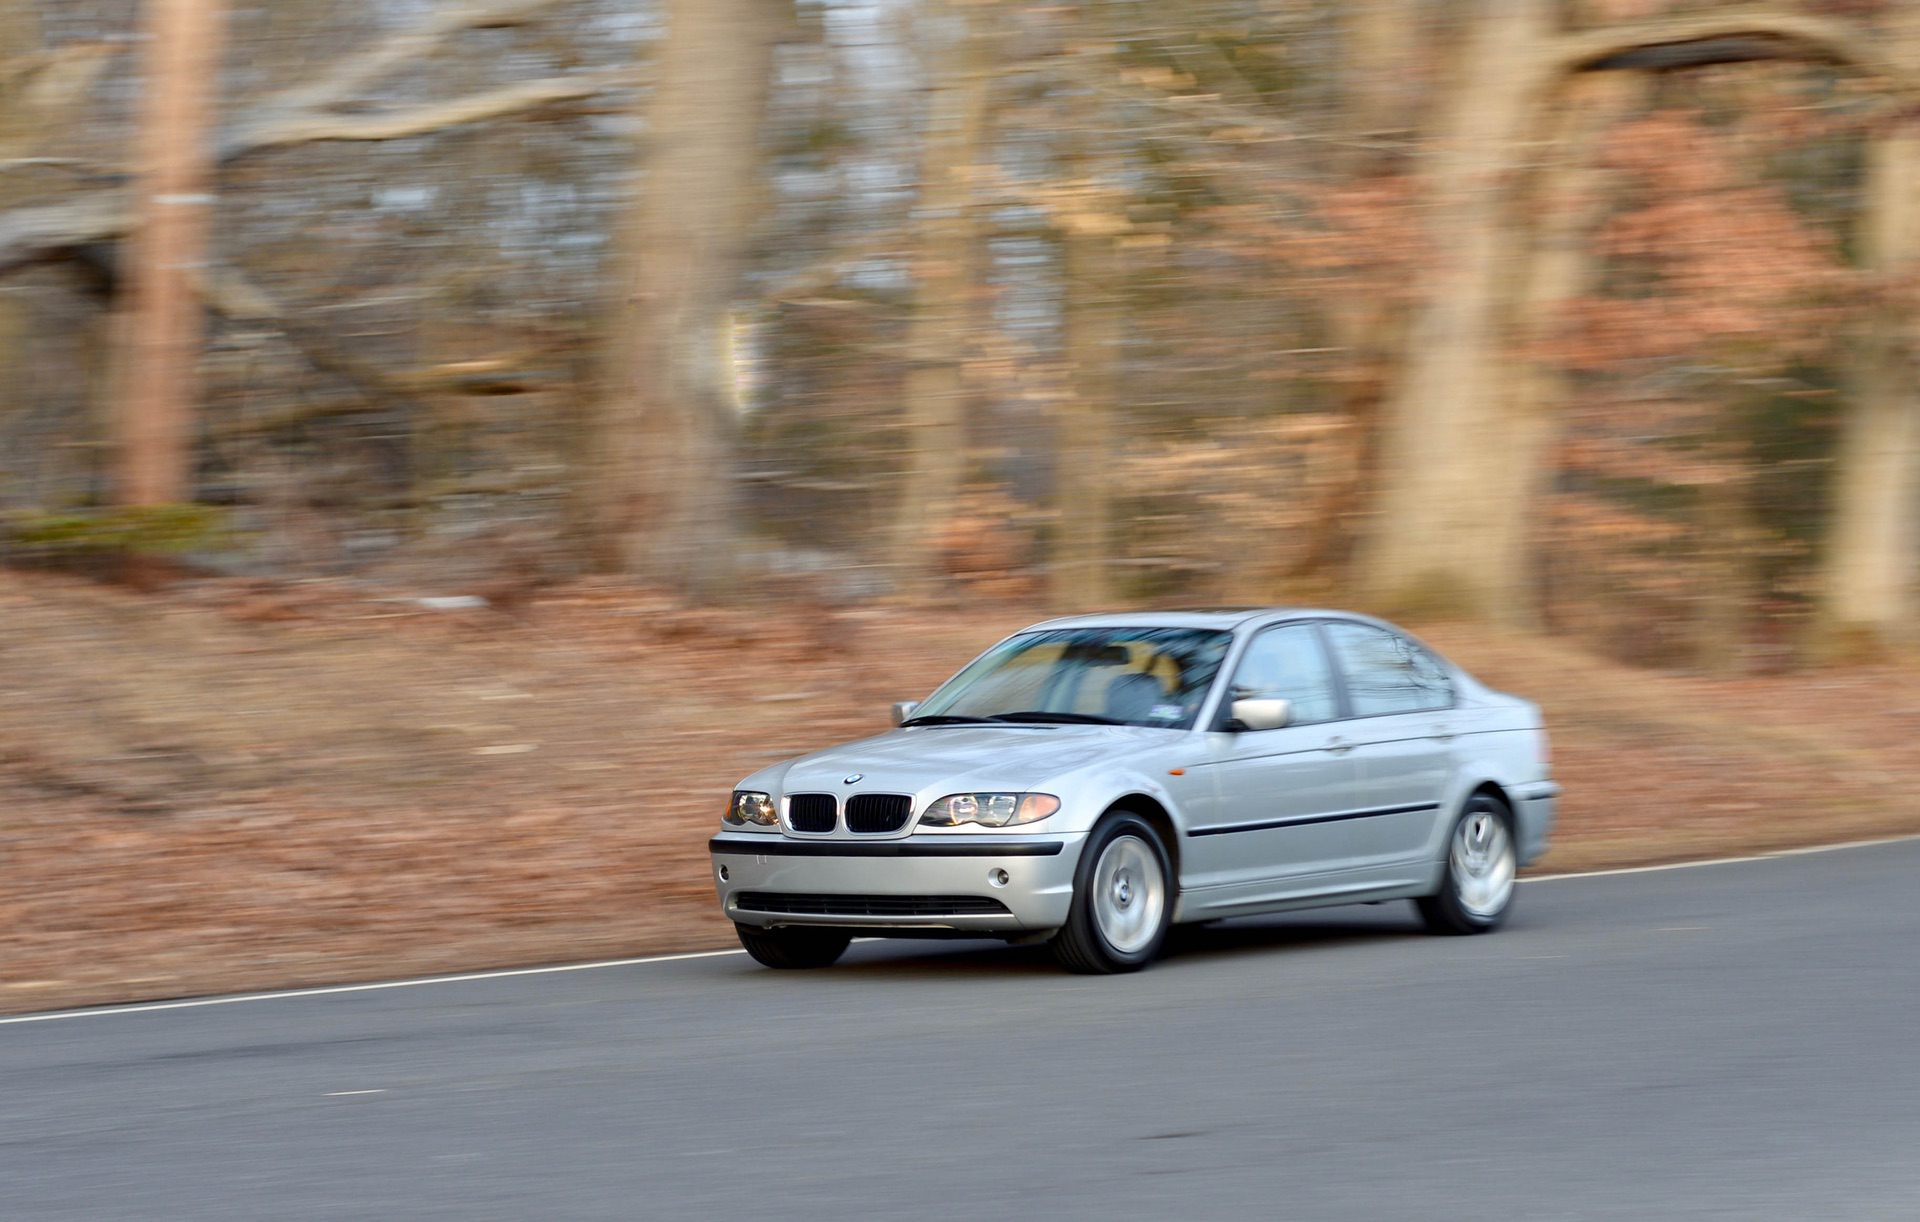 TEST DRIVE: BMW E46 3 Series - Revisited 20 Years Later